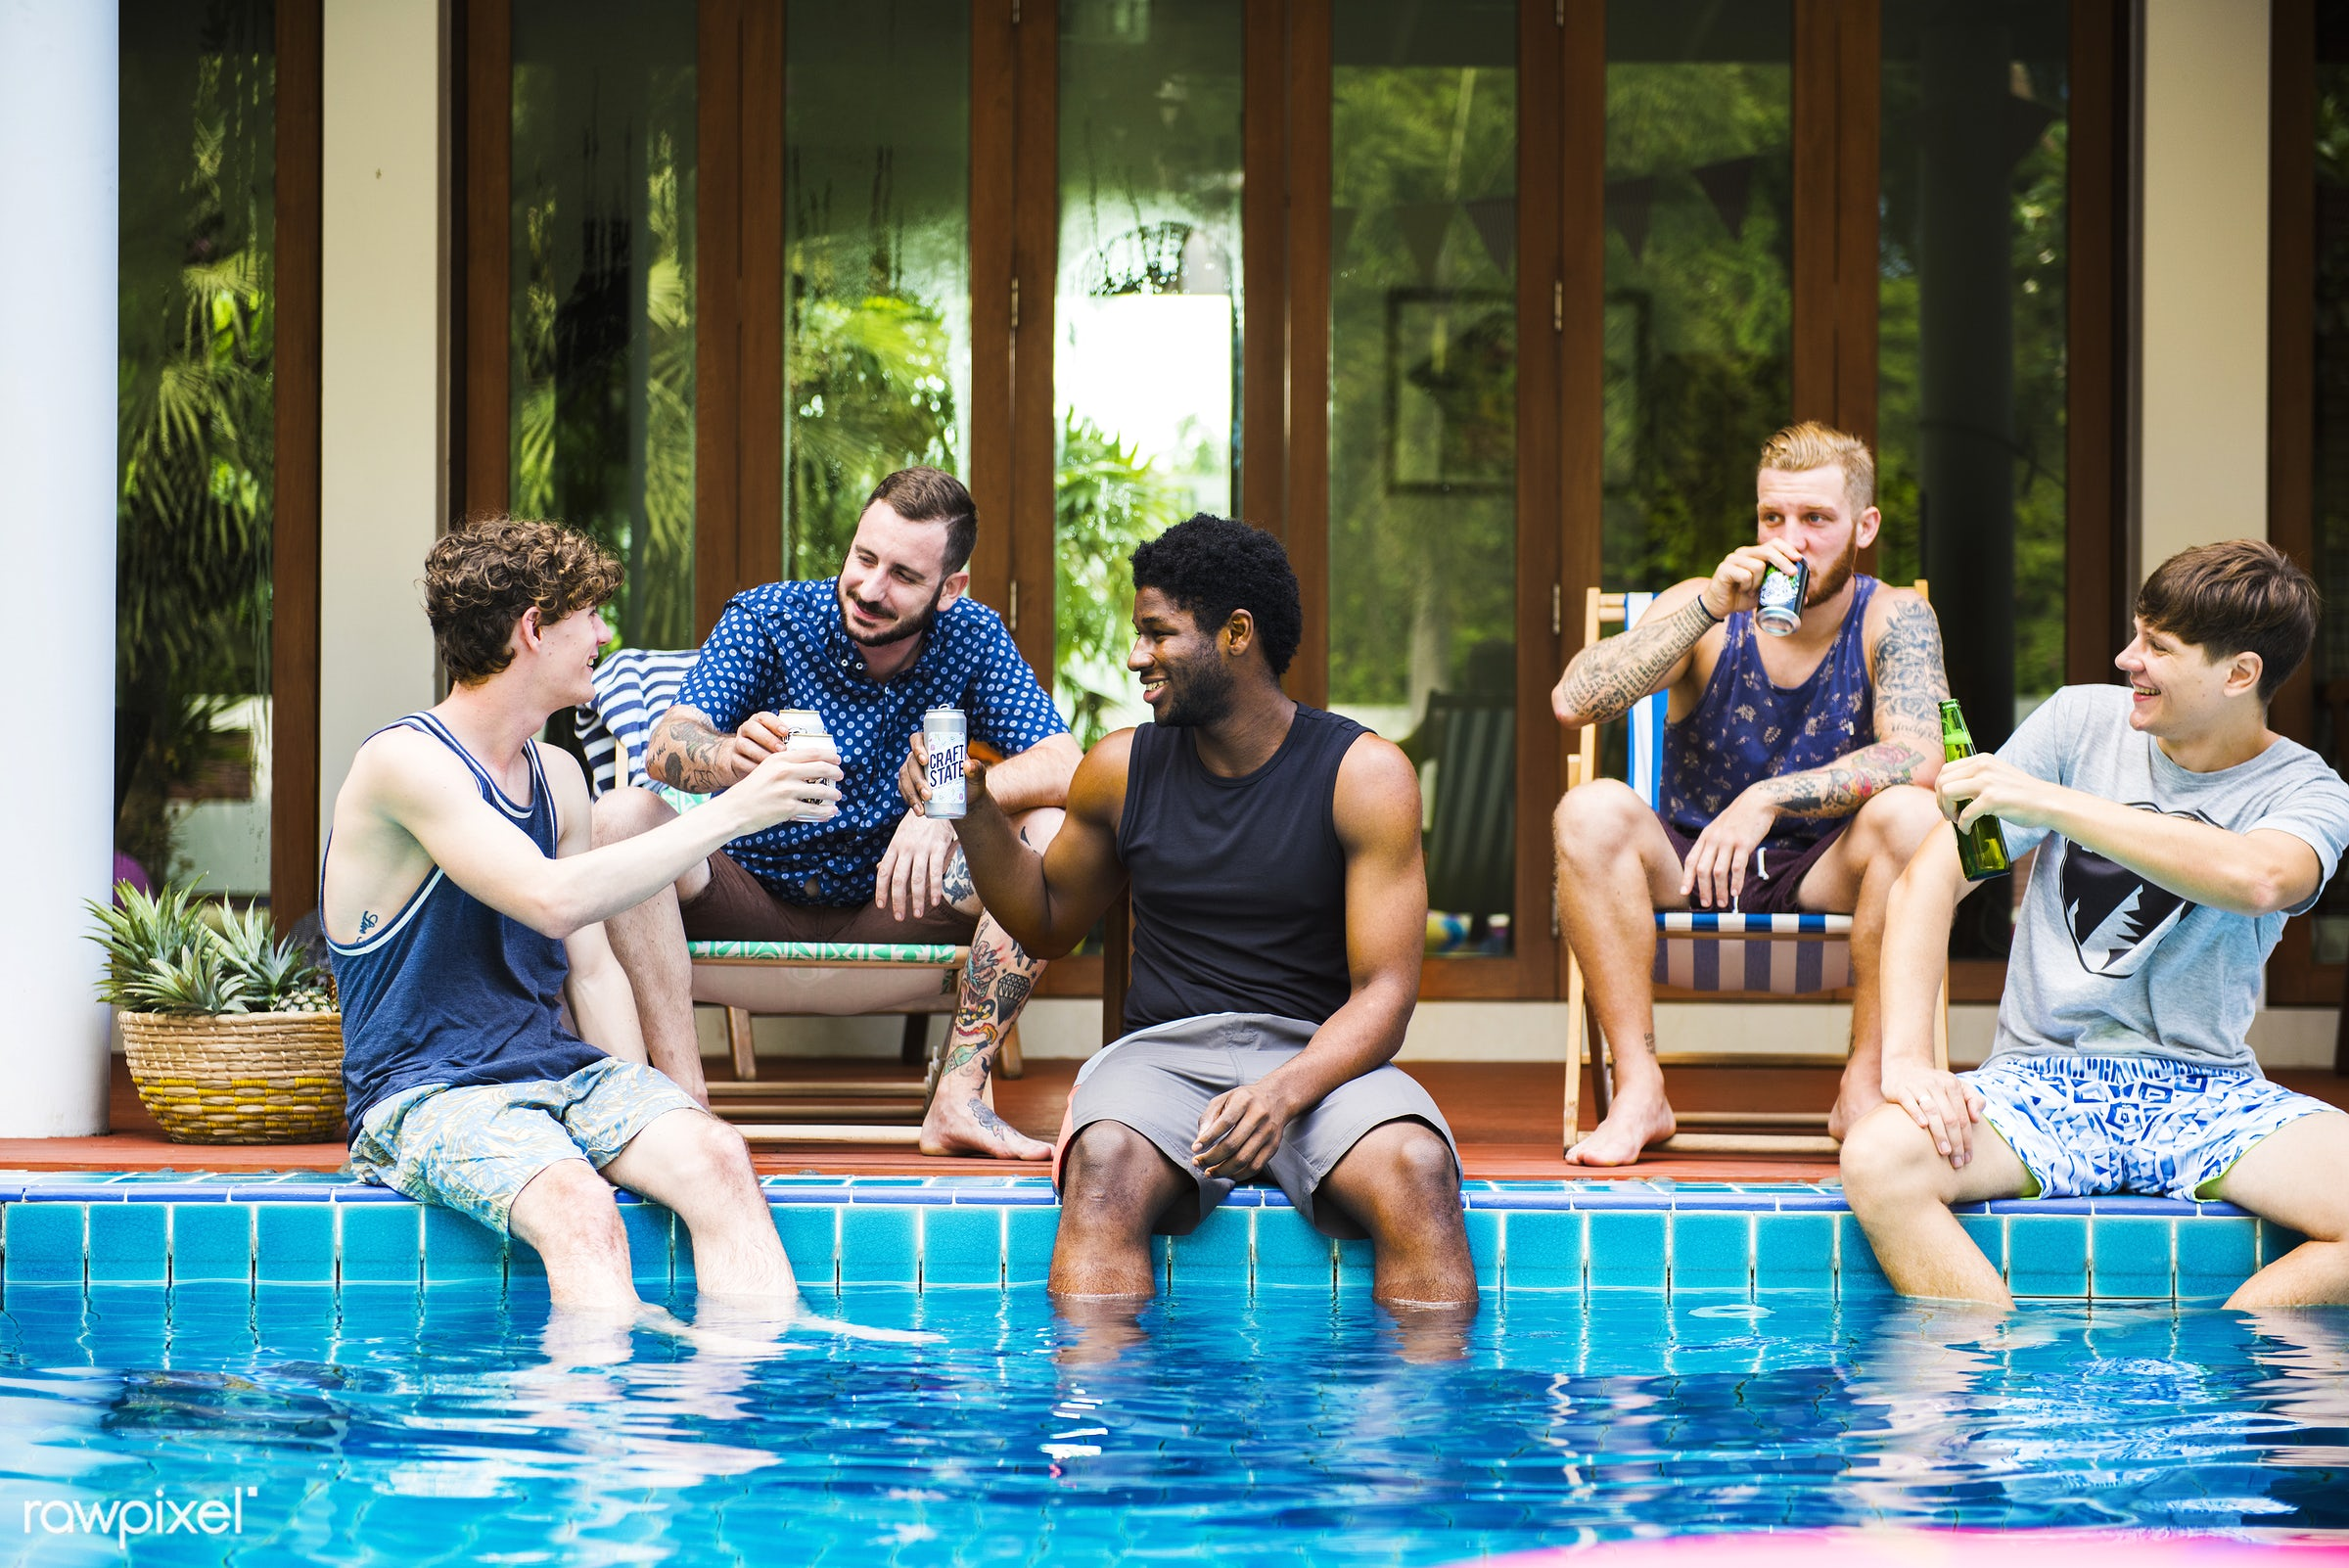 relax, diverse, house, recreation, party, people, drinks, guys, together, caucasian, friends, beer, pool, men, tubes,...